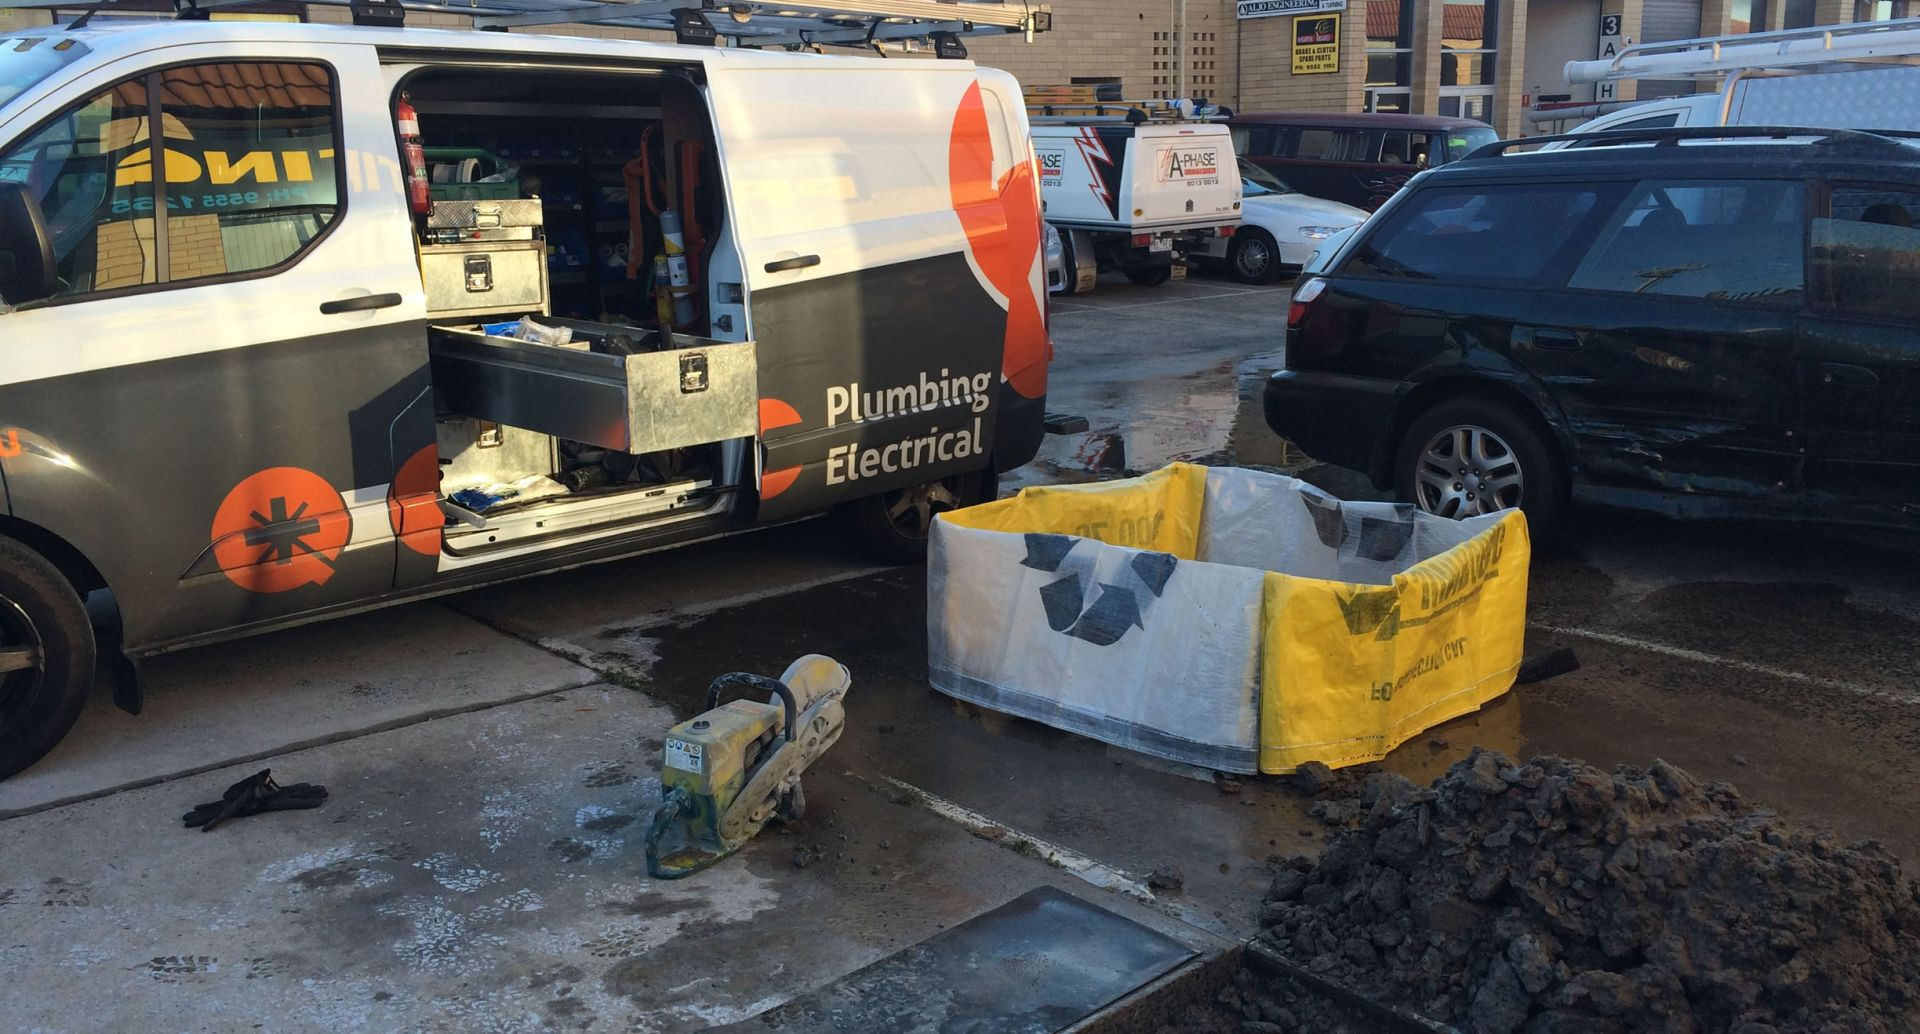 QC Plumbing and Electrical Street Work